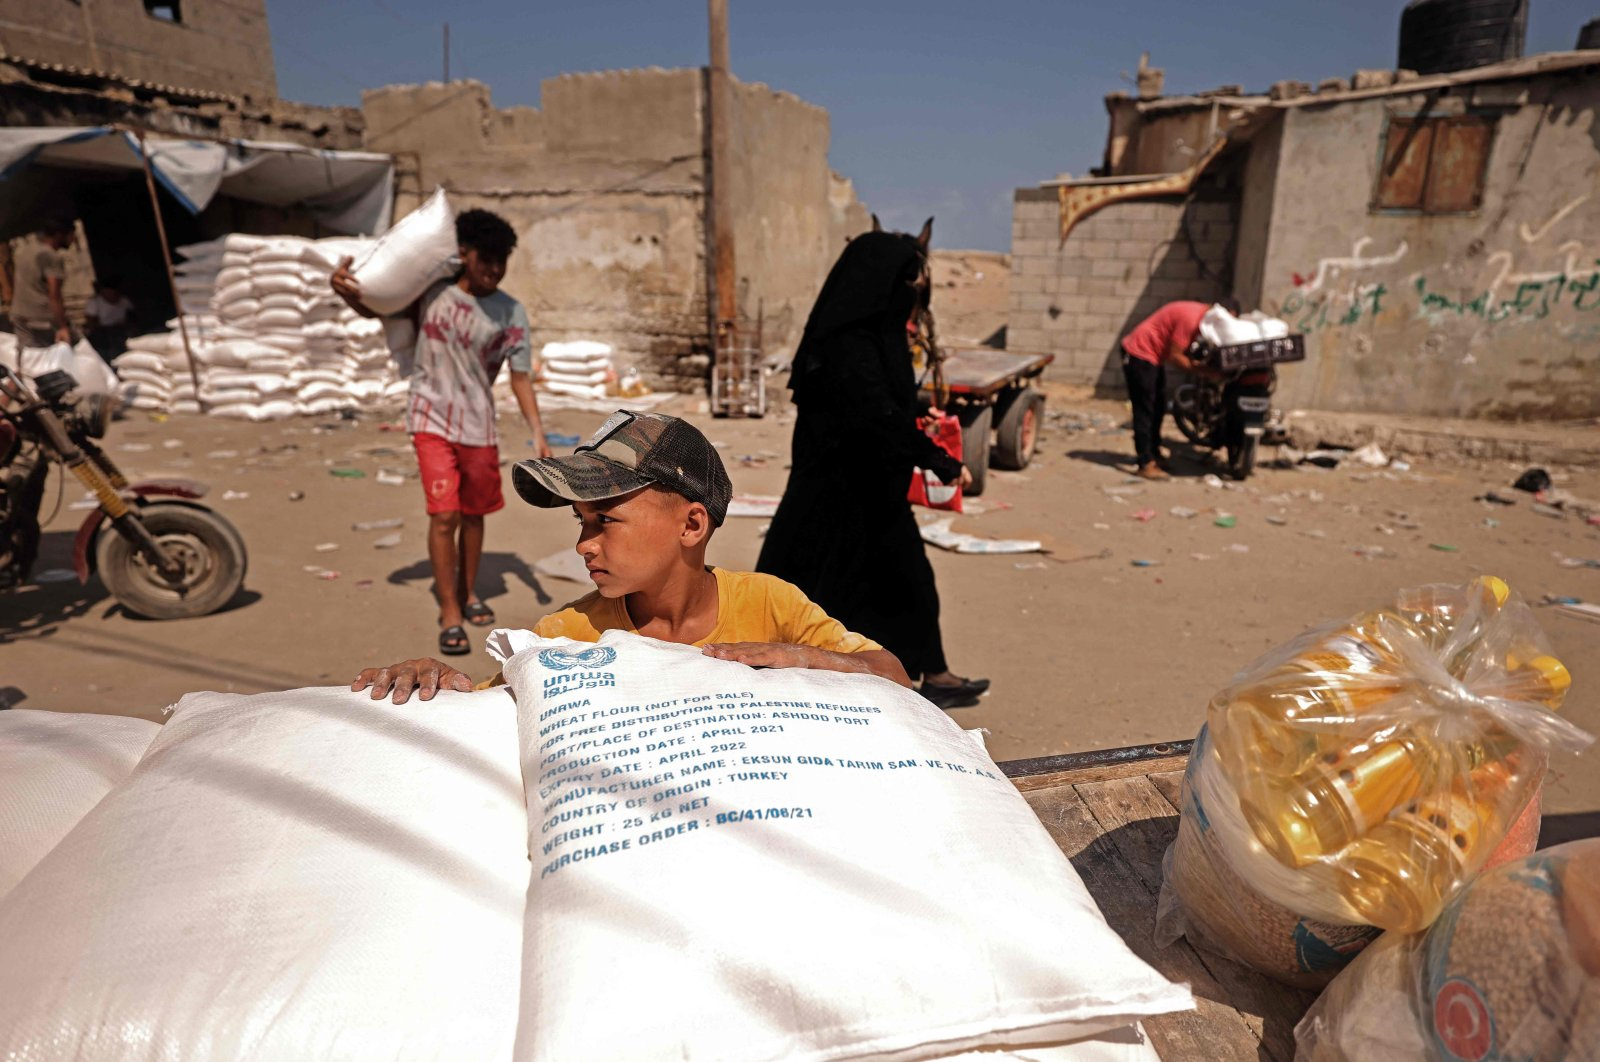 Palestinians collect food aid at a distribution center run by the United Nations Relief and Works Agency (UNRWA), in Gaza City, Palestine, July 26, 2021. (AFP Photo)